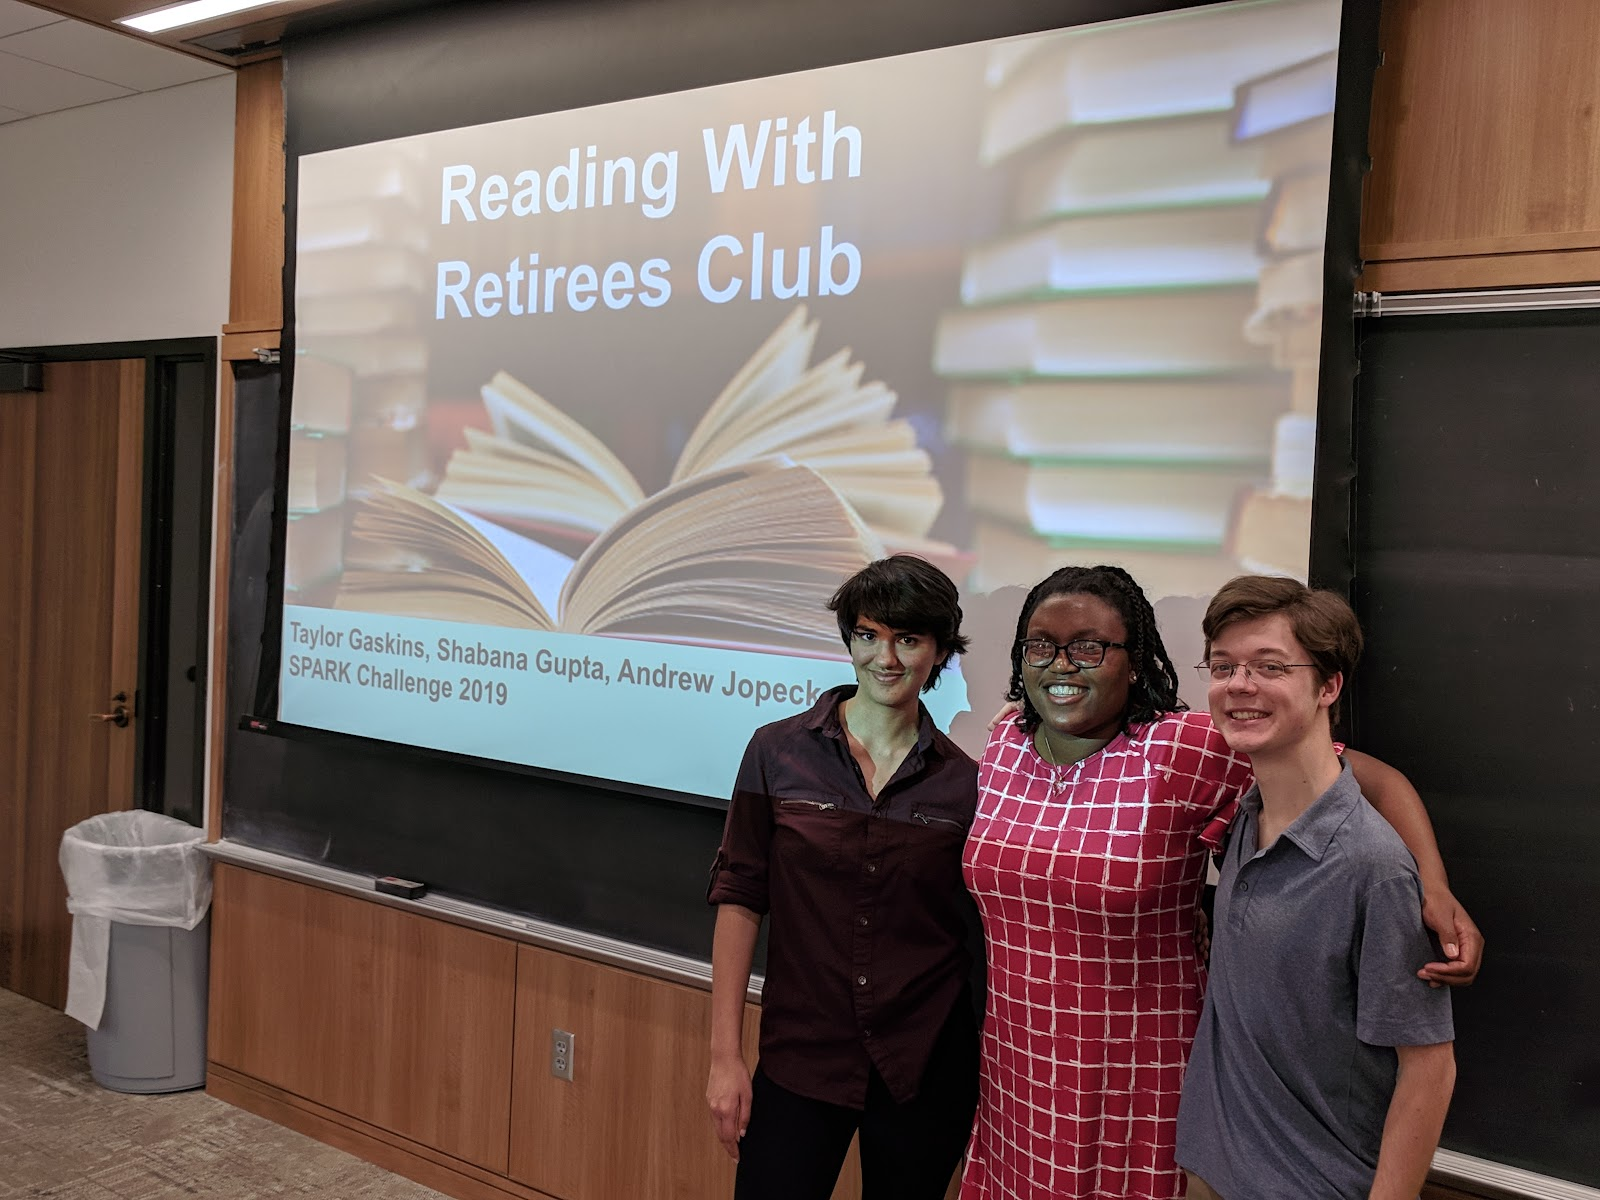 Reading with Retirees Club